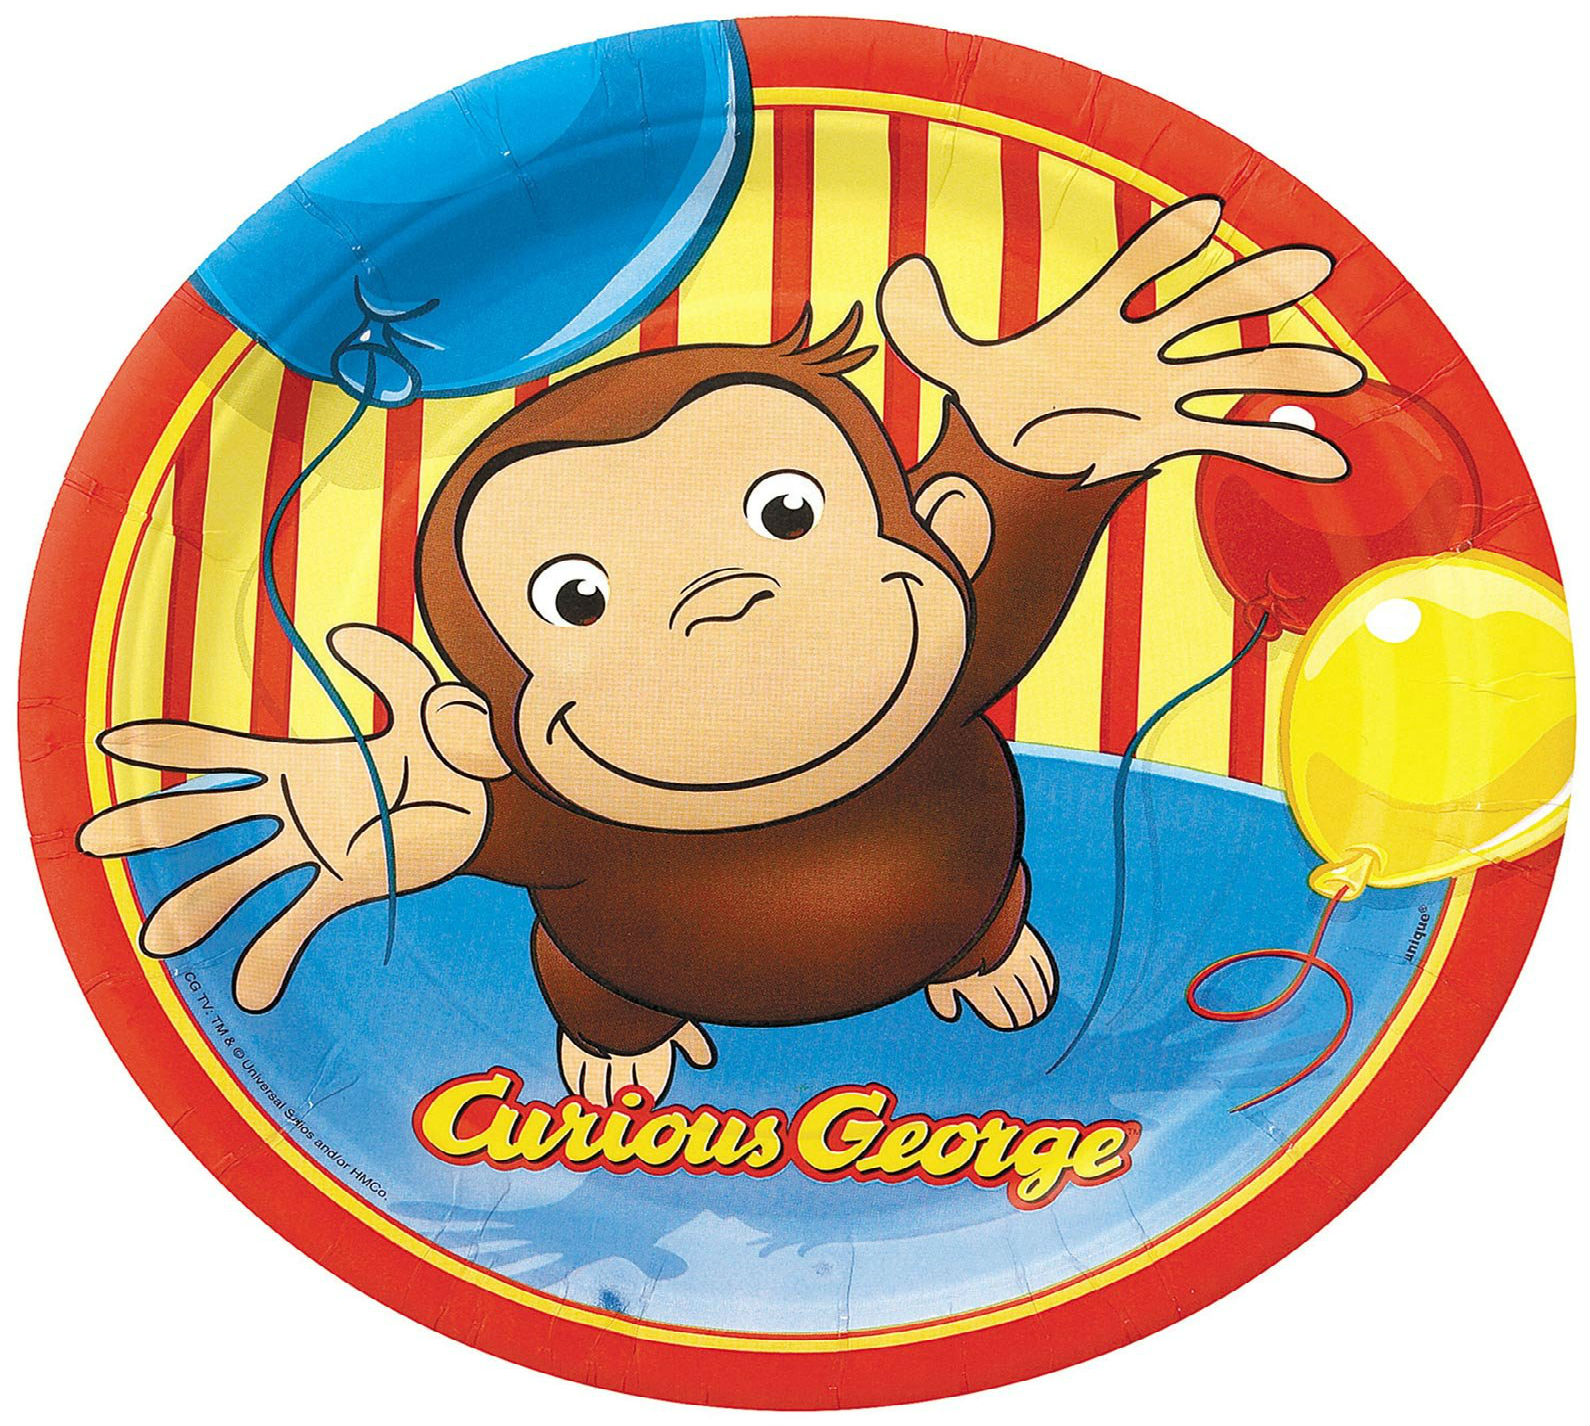 curious george birthday g wallpaper 1590x1426 185548